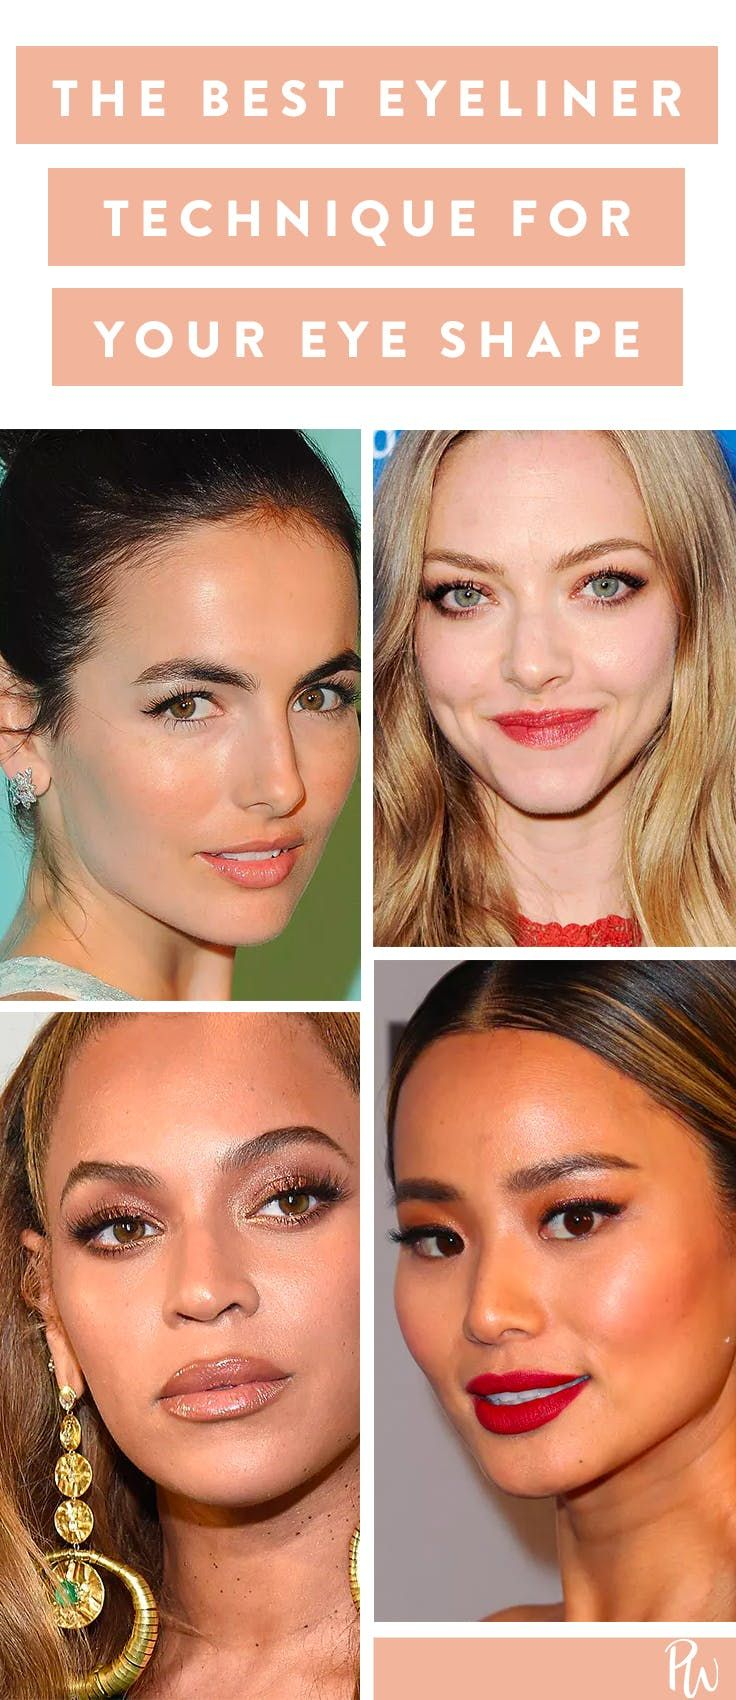 The Most Flattering Eyeliner Technique for Your Eye Shape #purewow #eyes #eyeliner #makeup #trick #tip #beauty